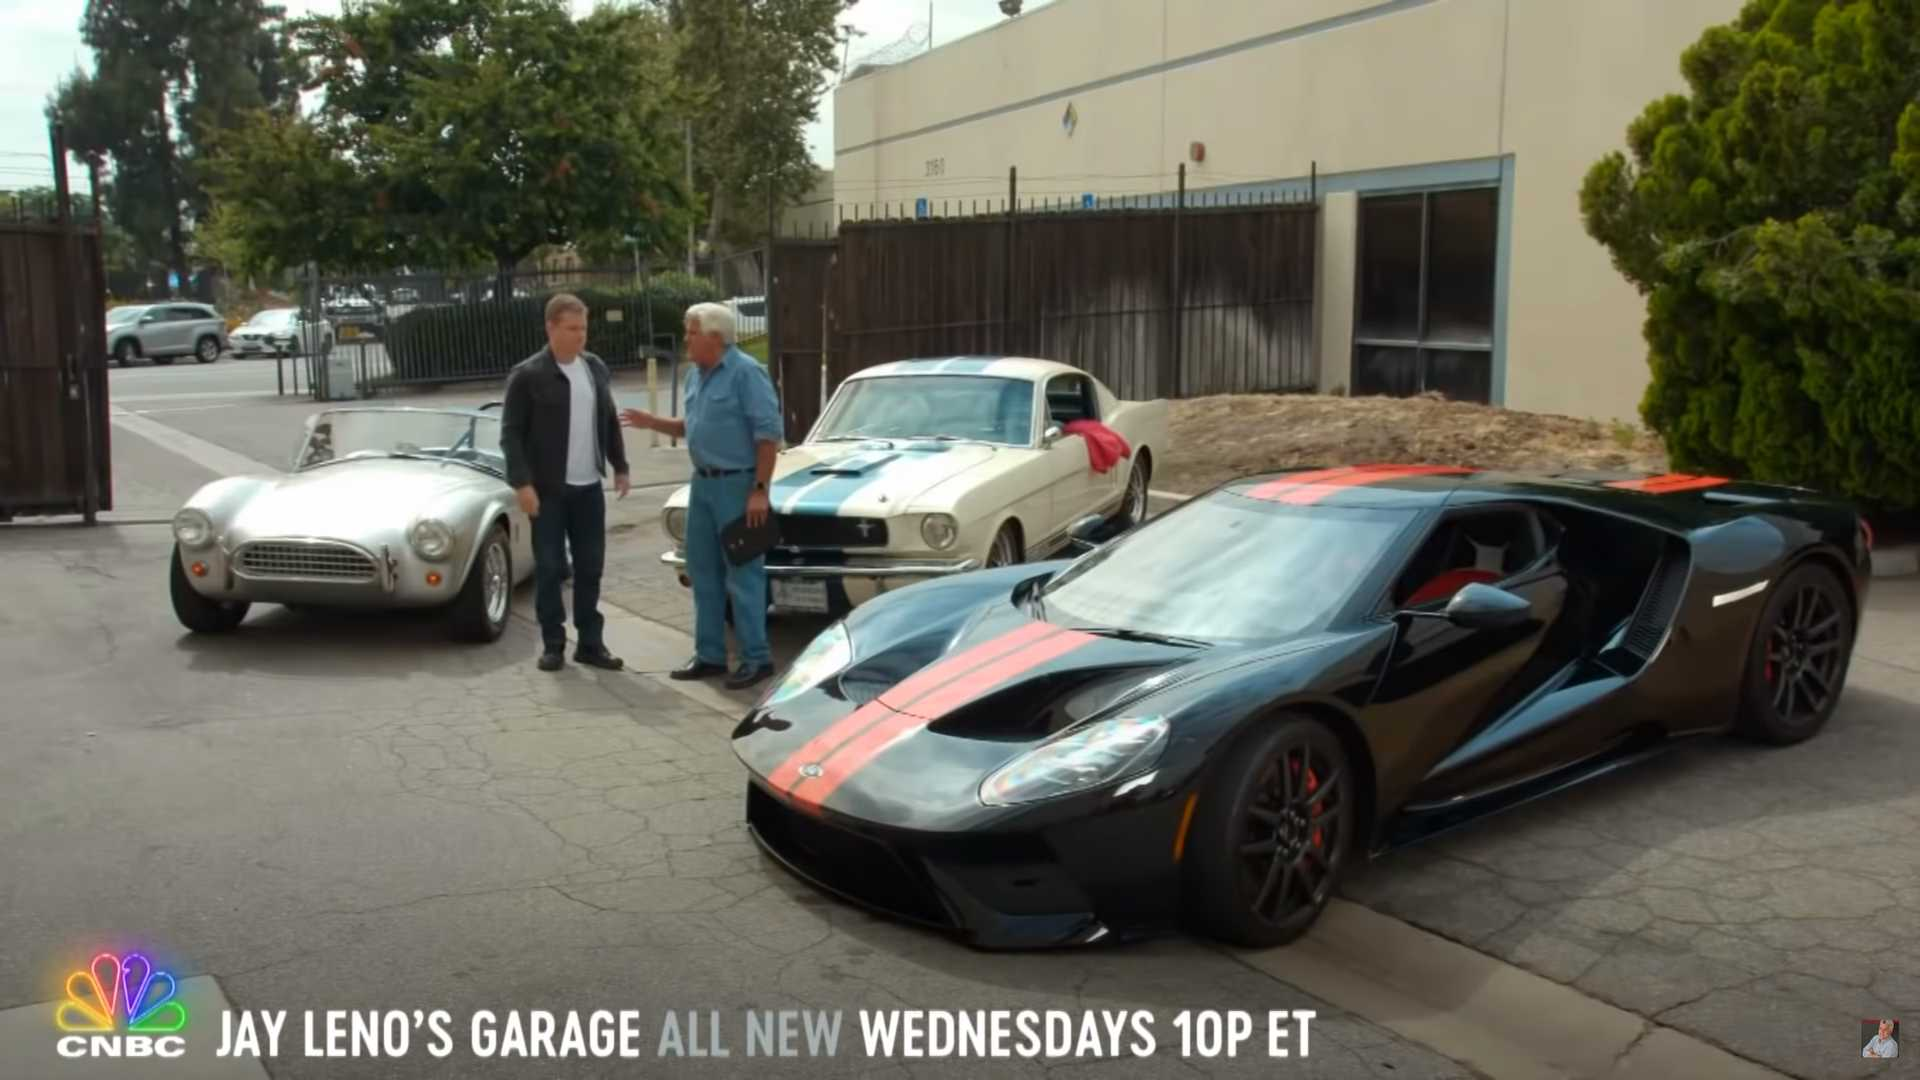 Matt Damon Visits Jay Leno's Garage To Talk Ford V Ferrari